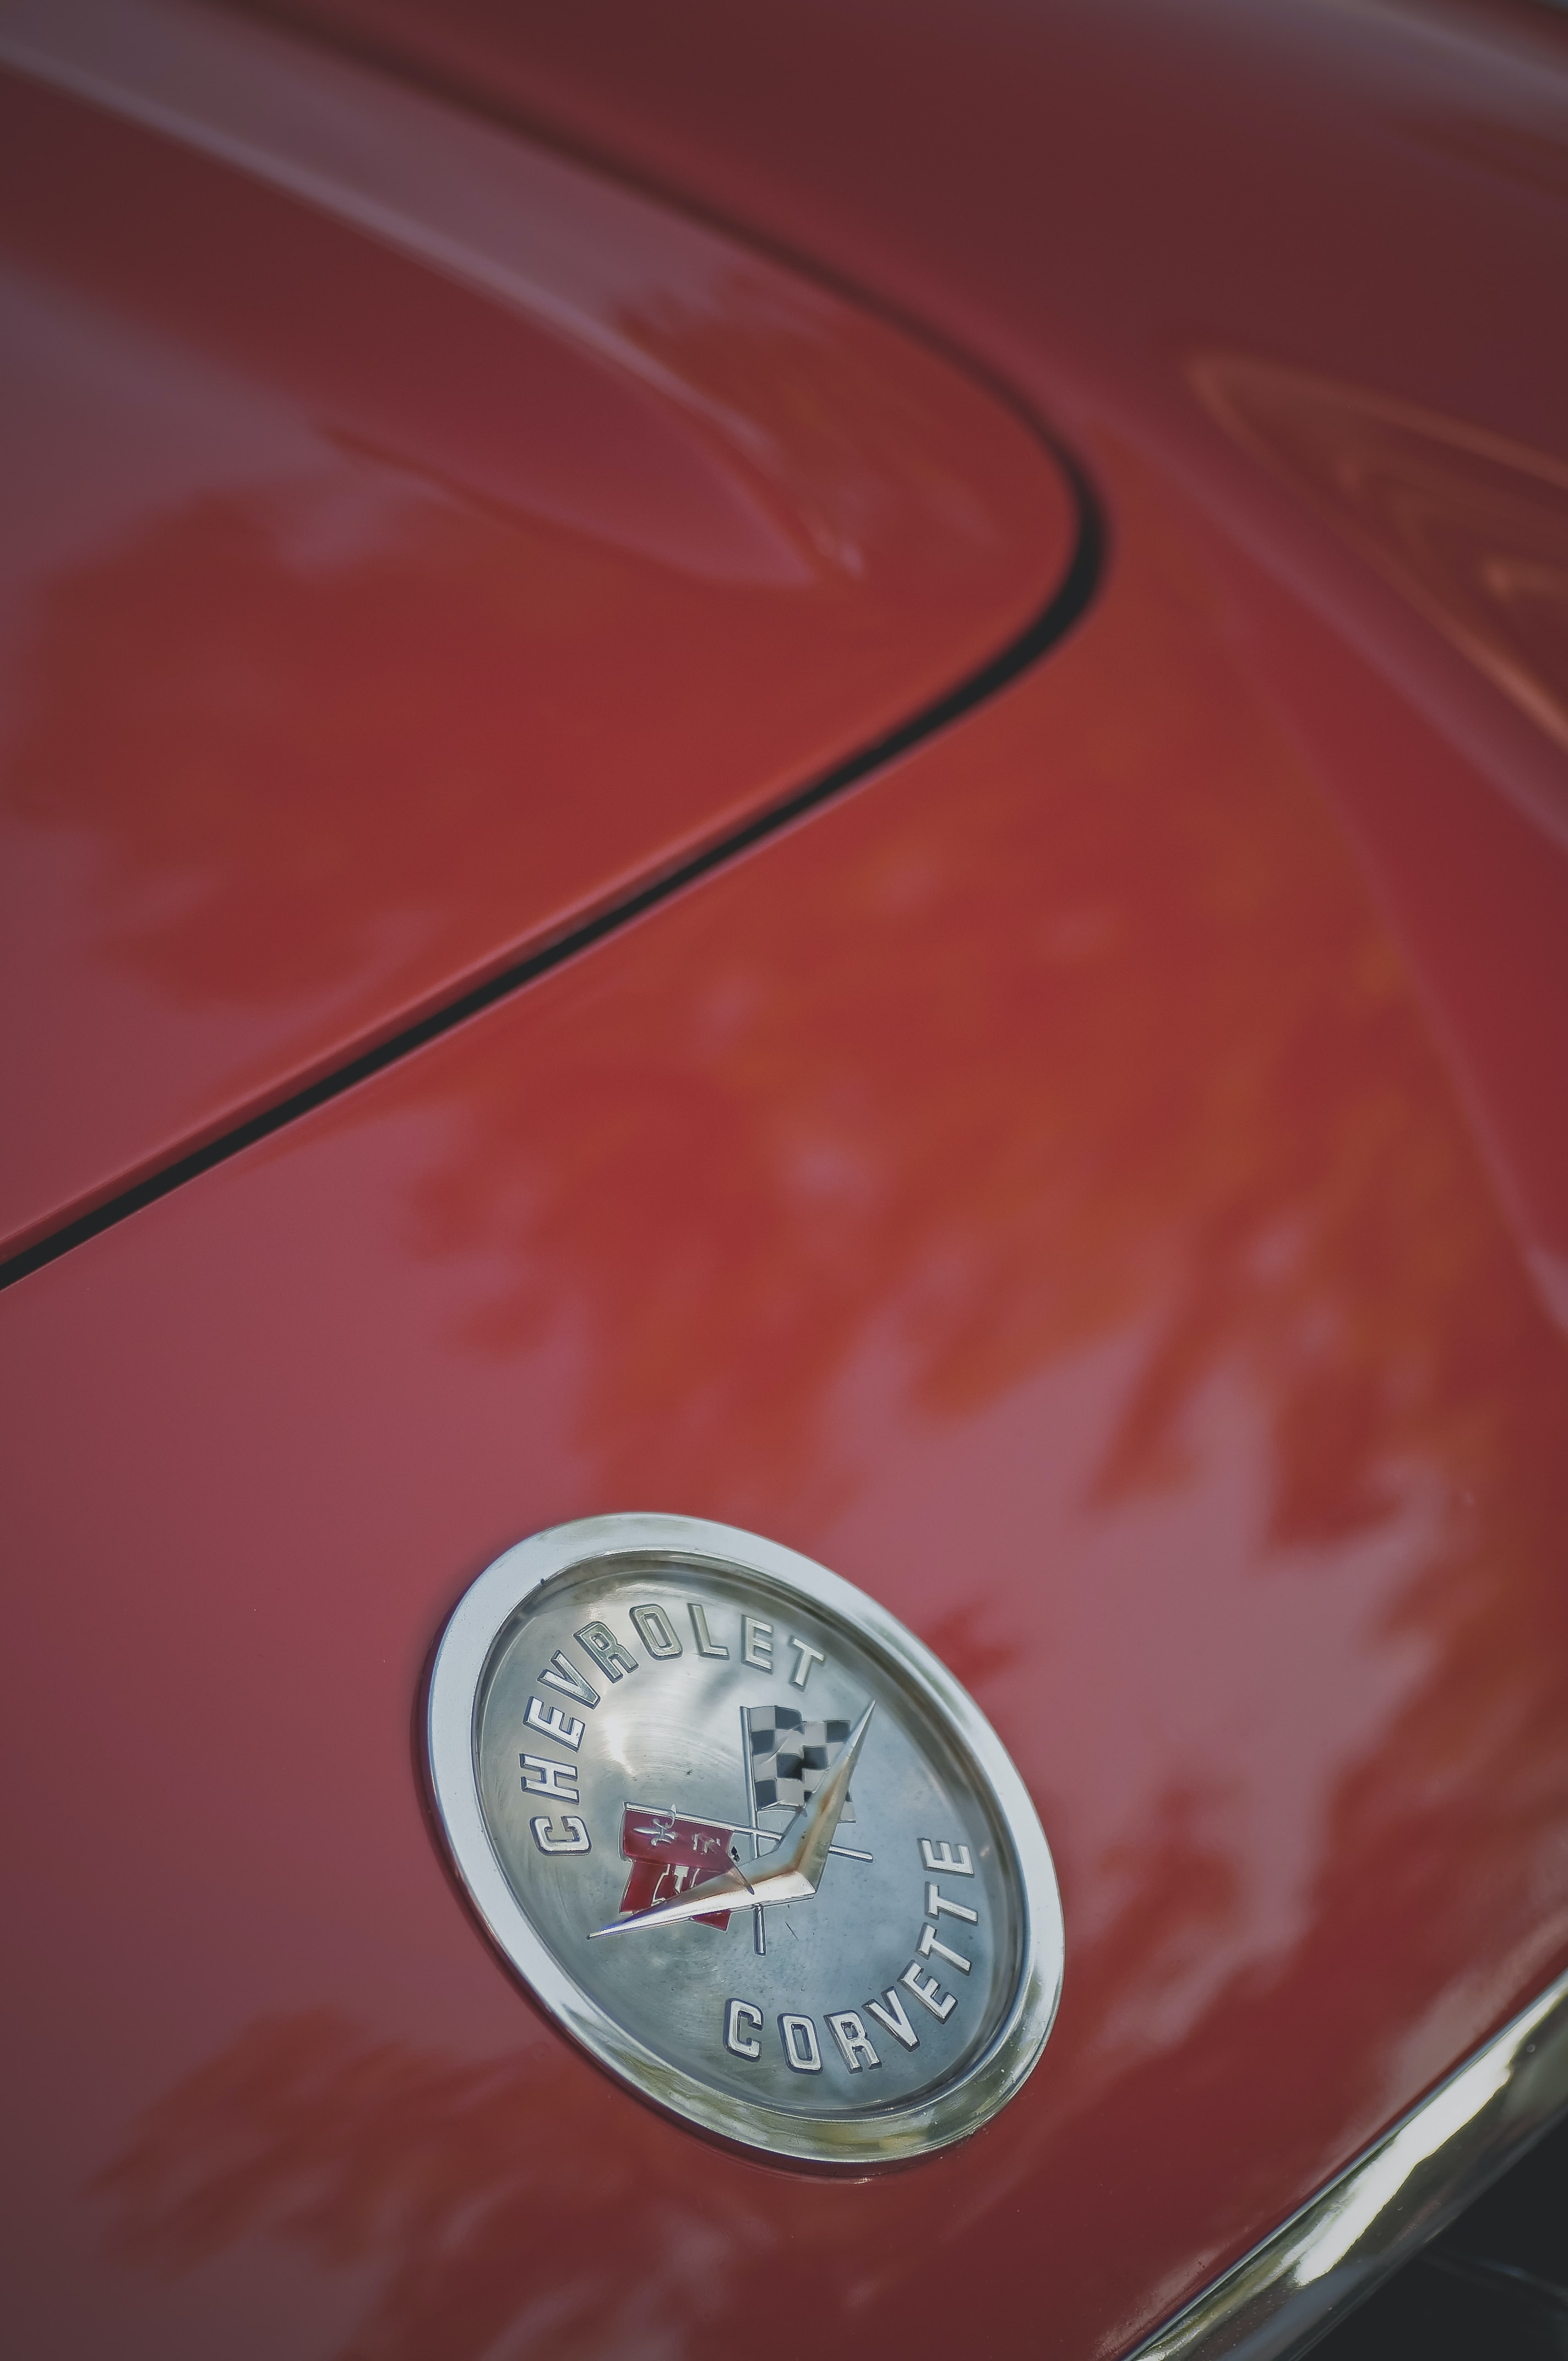 Close up of the hood of a Chevrolet Corvette.